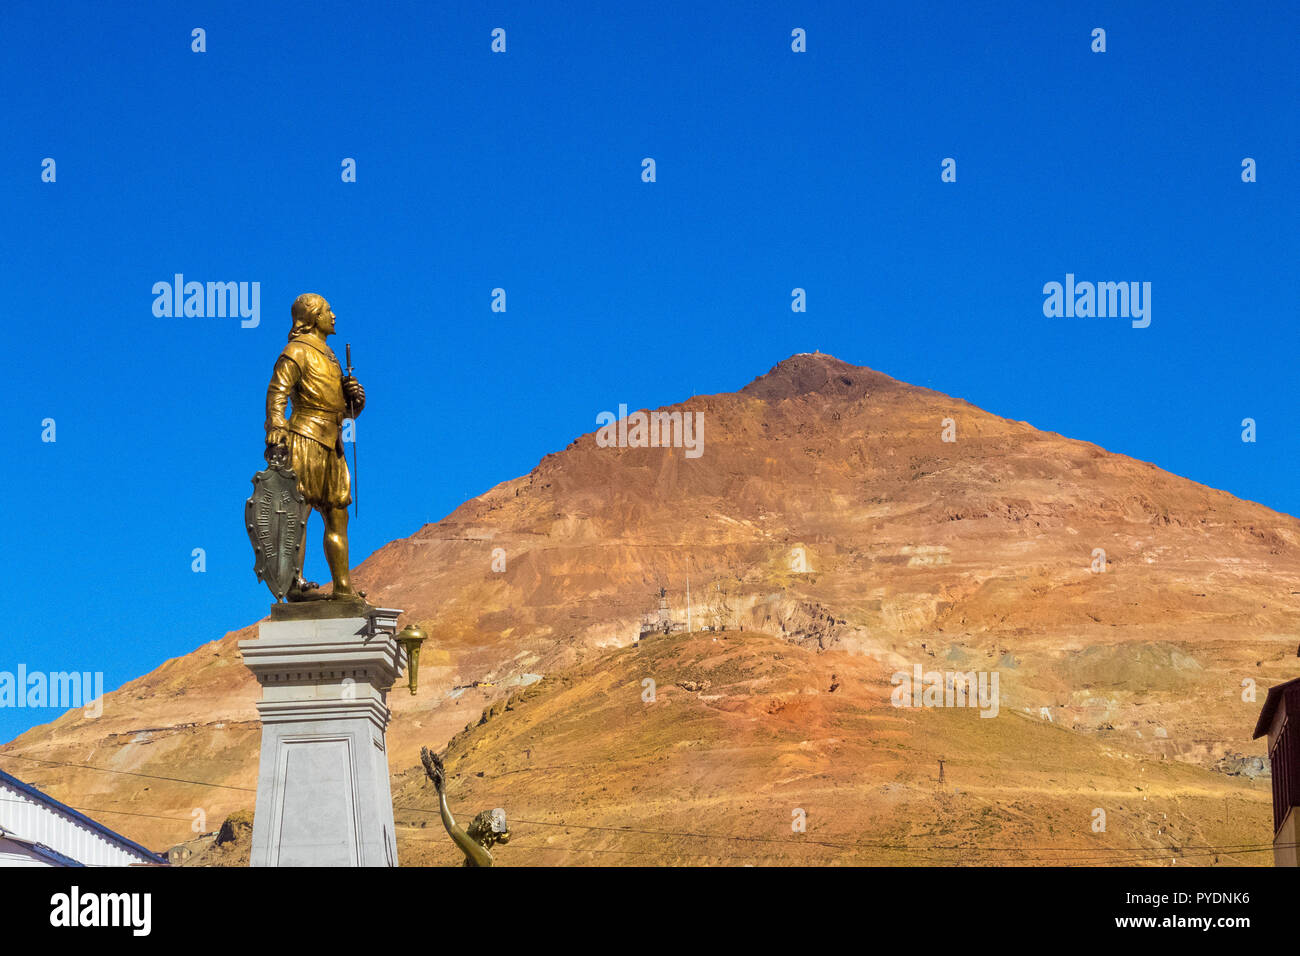 Potosi (UNESCO) in Bolivia - the world's highest city (4070m). Panoramic view over the city and the colored mountain, Cerro Rico with the working silv - Stock Image